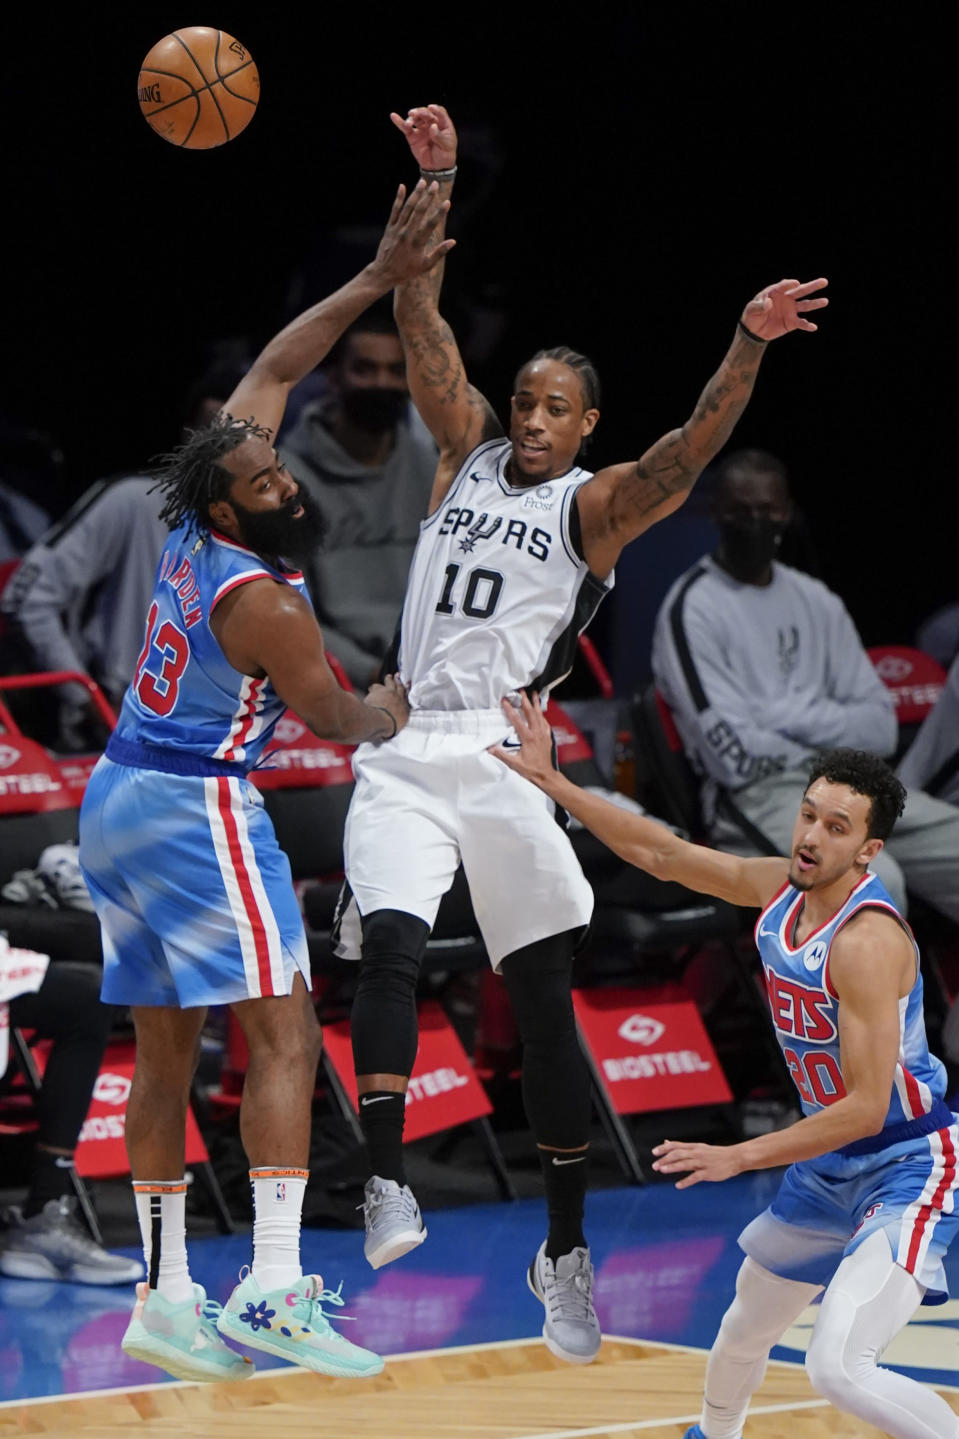 San Antonio Spurs' DeMar DeRozan (10) passes away from Brooklyn Nets' James Harden (13) and Landry Shamet (20) during the second half of an NBA basketball game Wednesday, May 12, 2021, in New York. (AP Photo/Frank Franklin II)